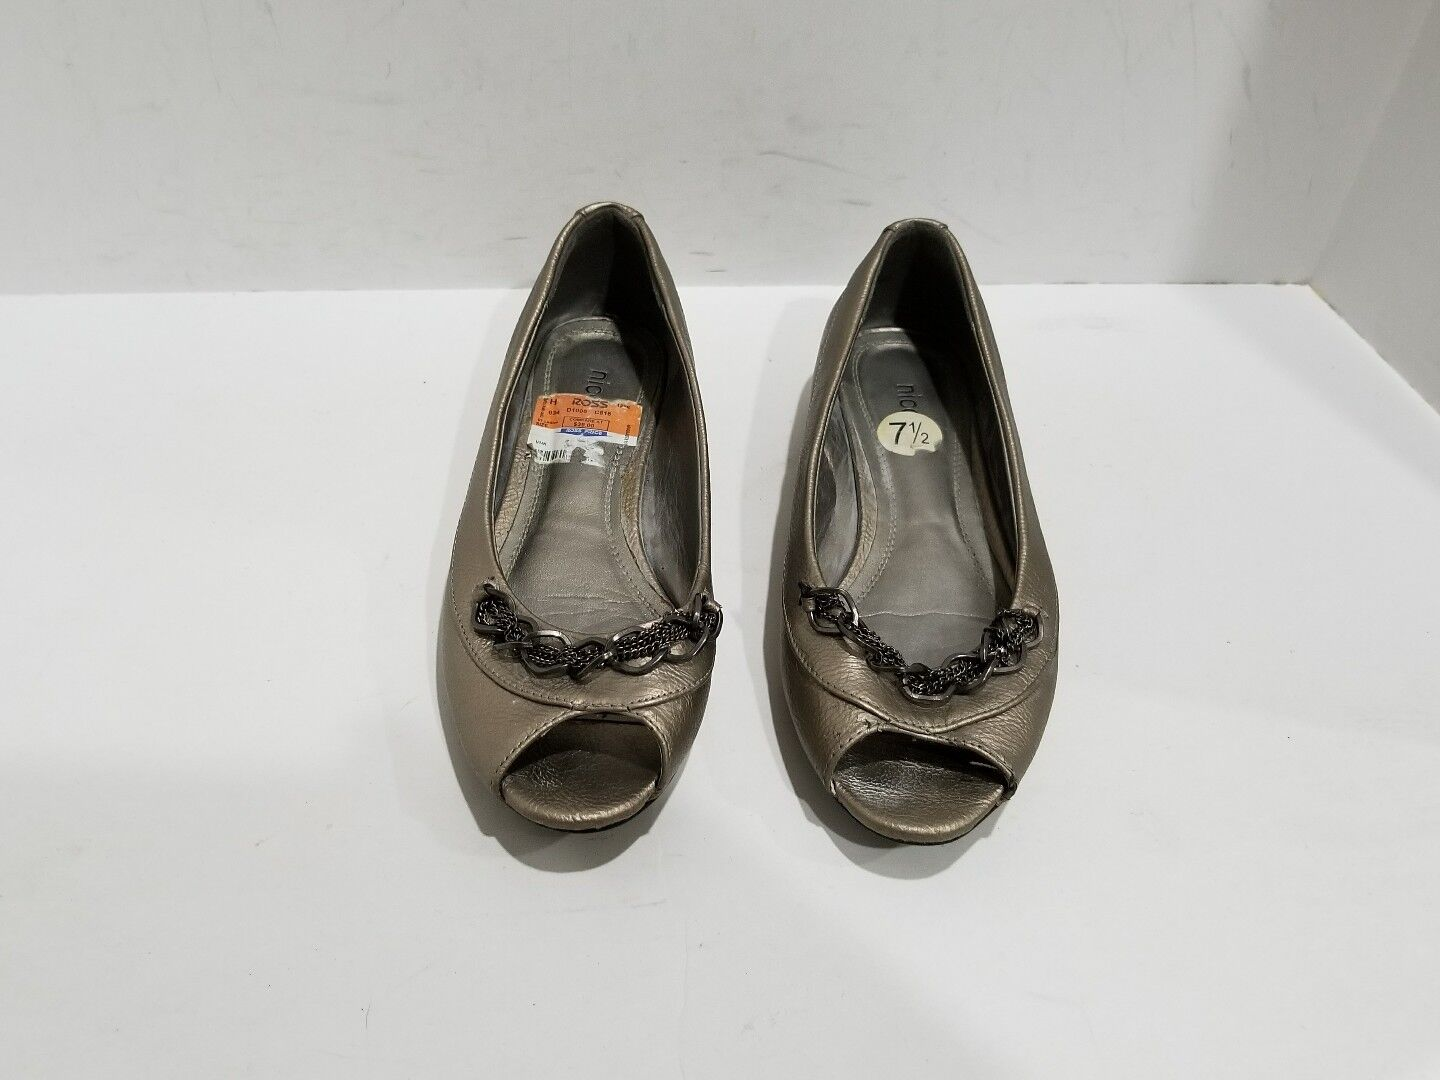 Nicole Womens Loafers Metallic Leather Open Toe Loafers Womens Size 7.5 M 315071